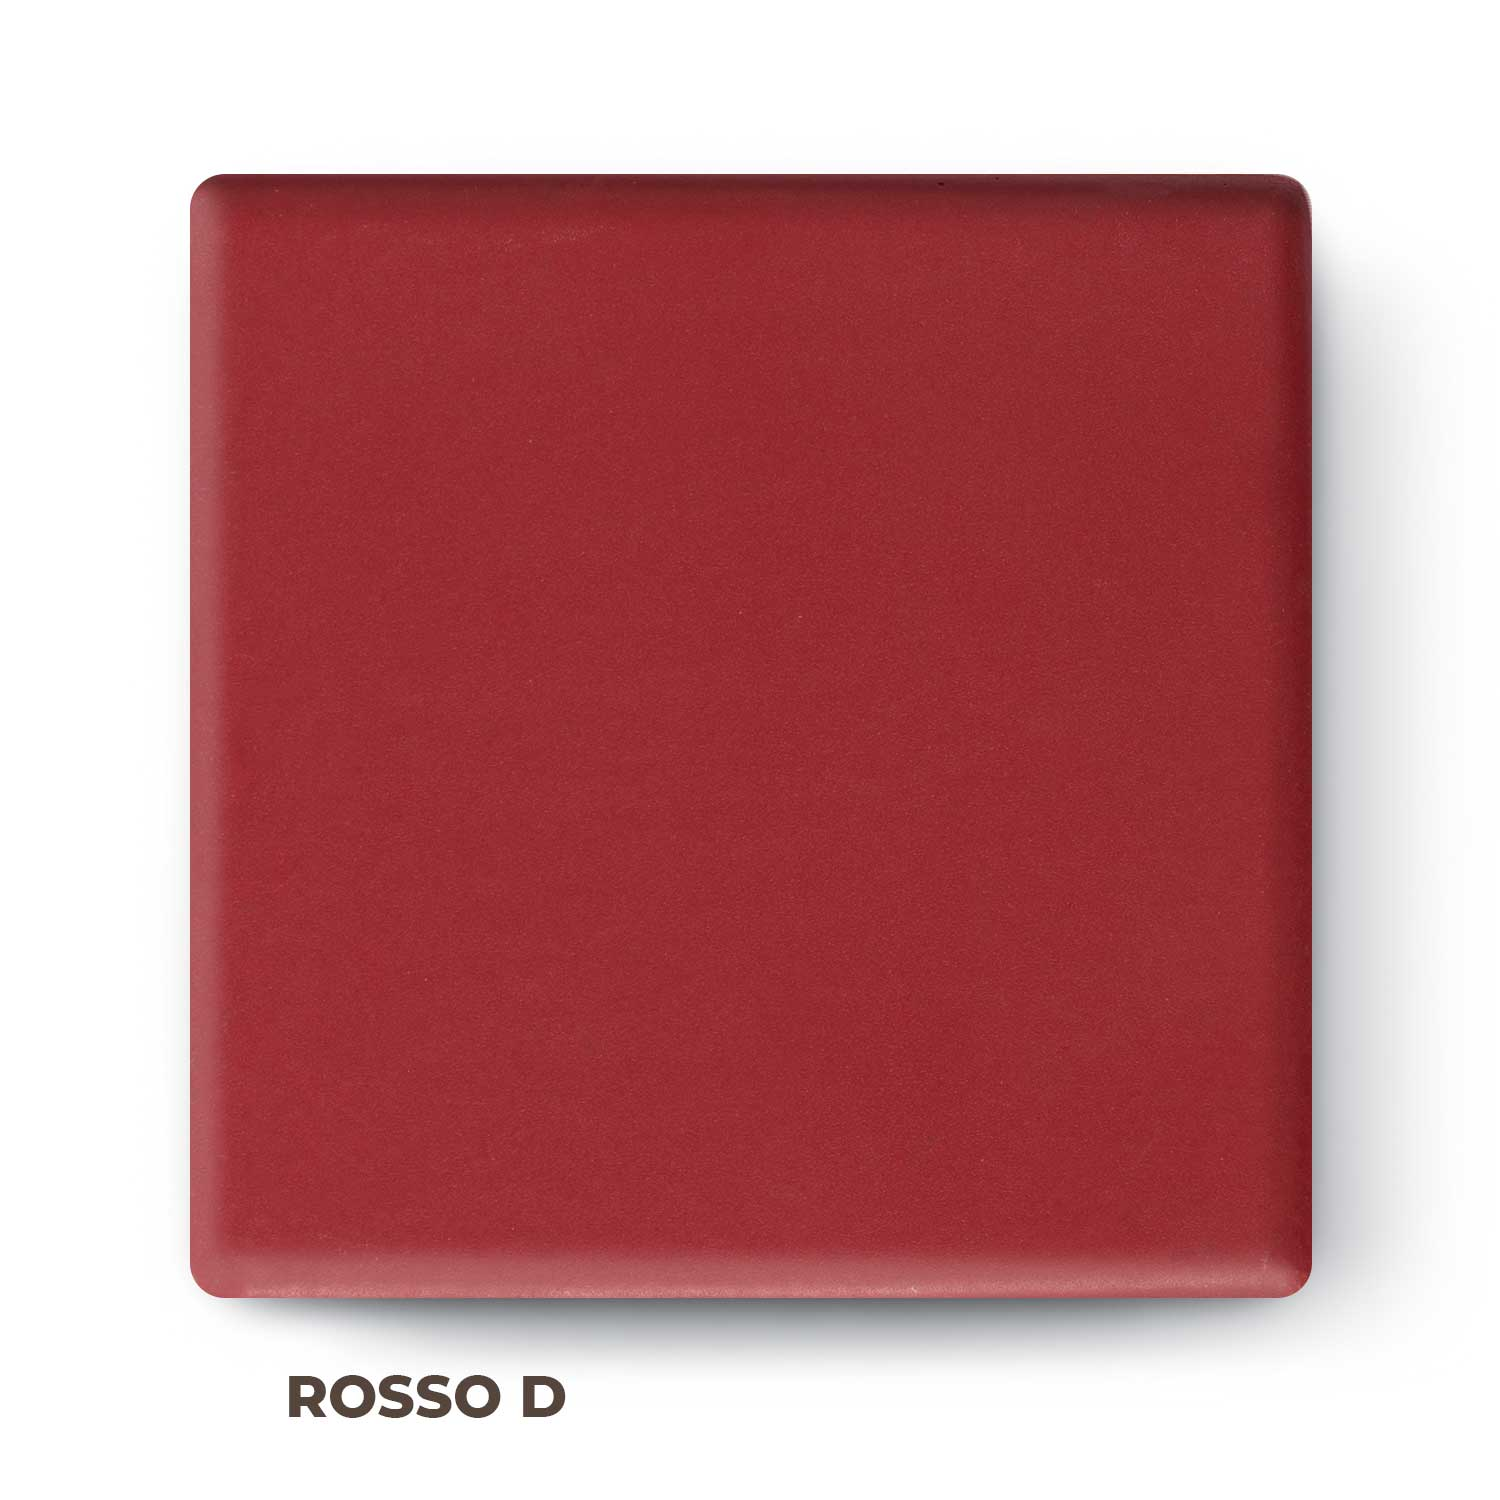 Rosso D